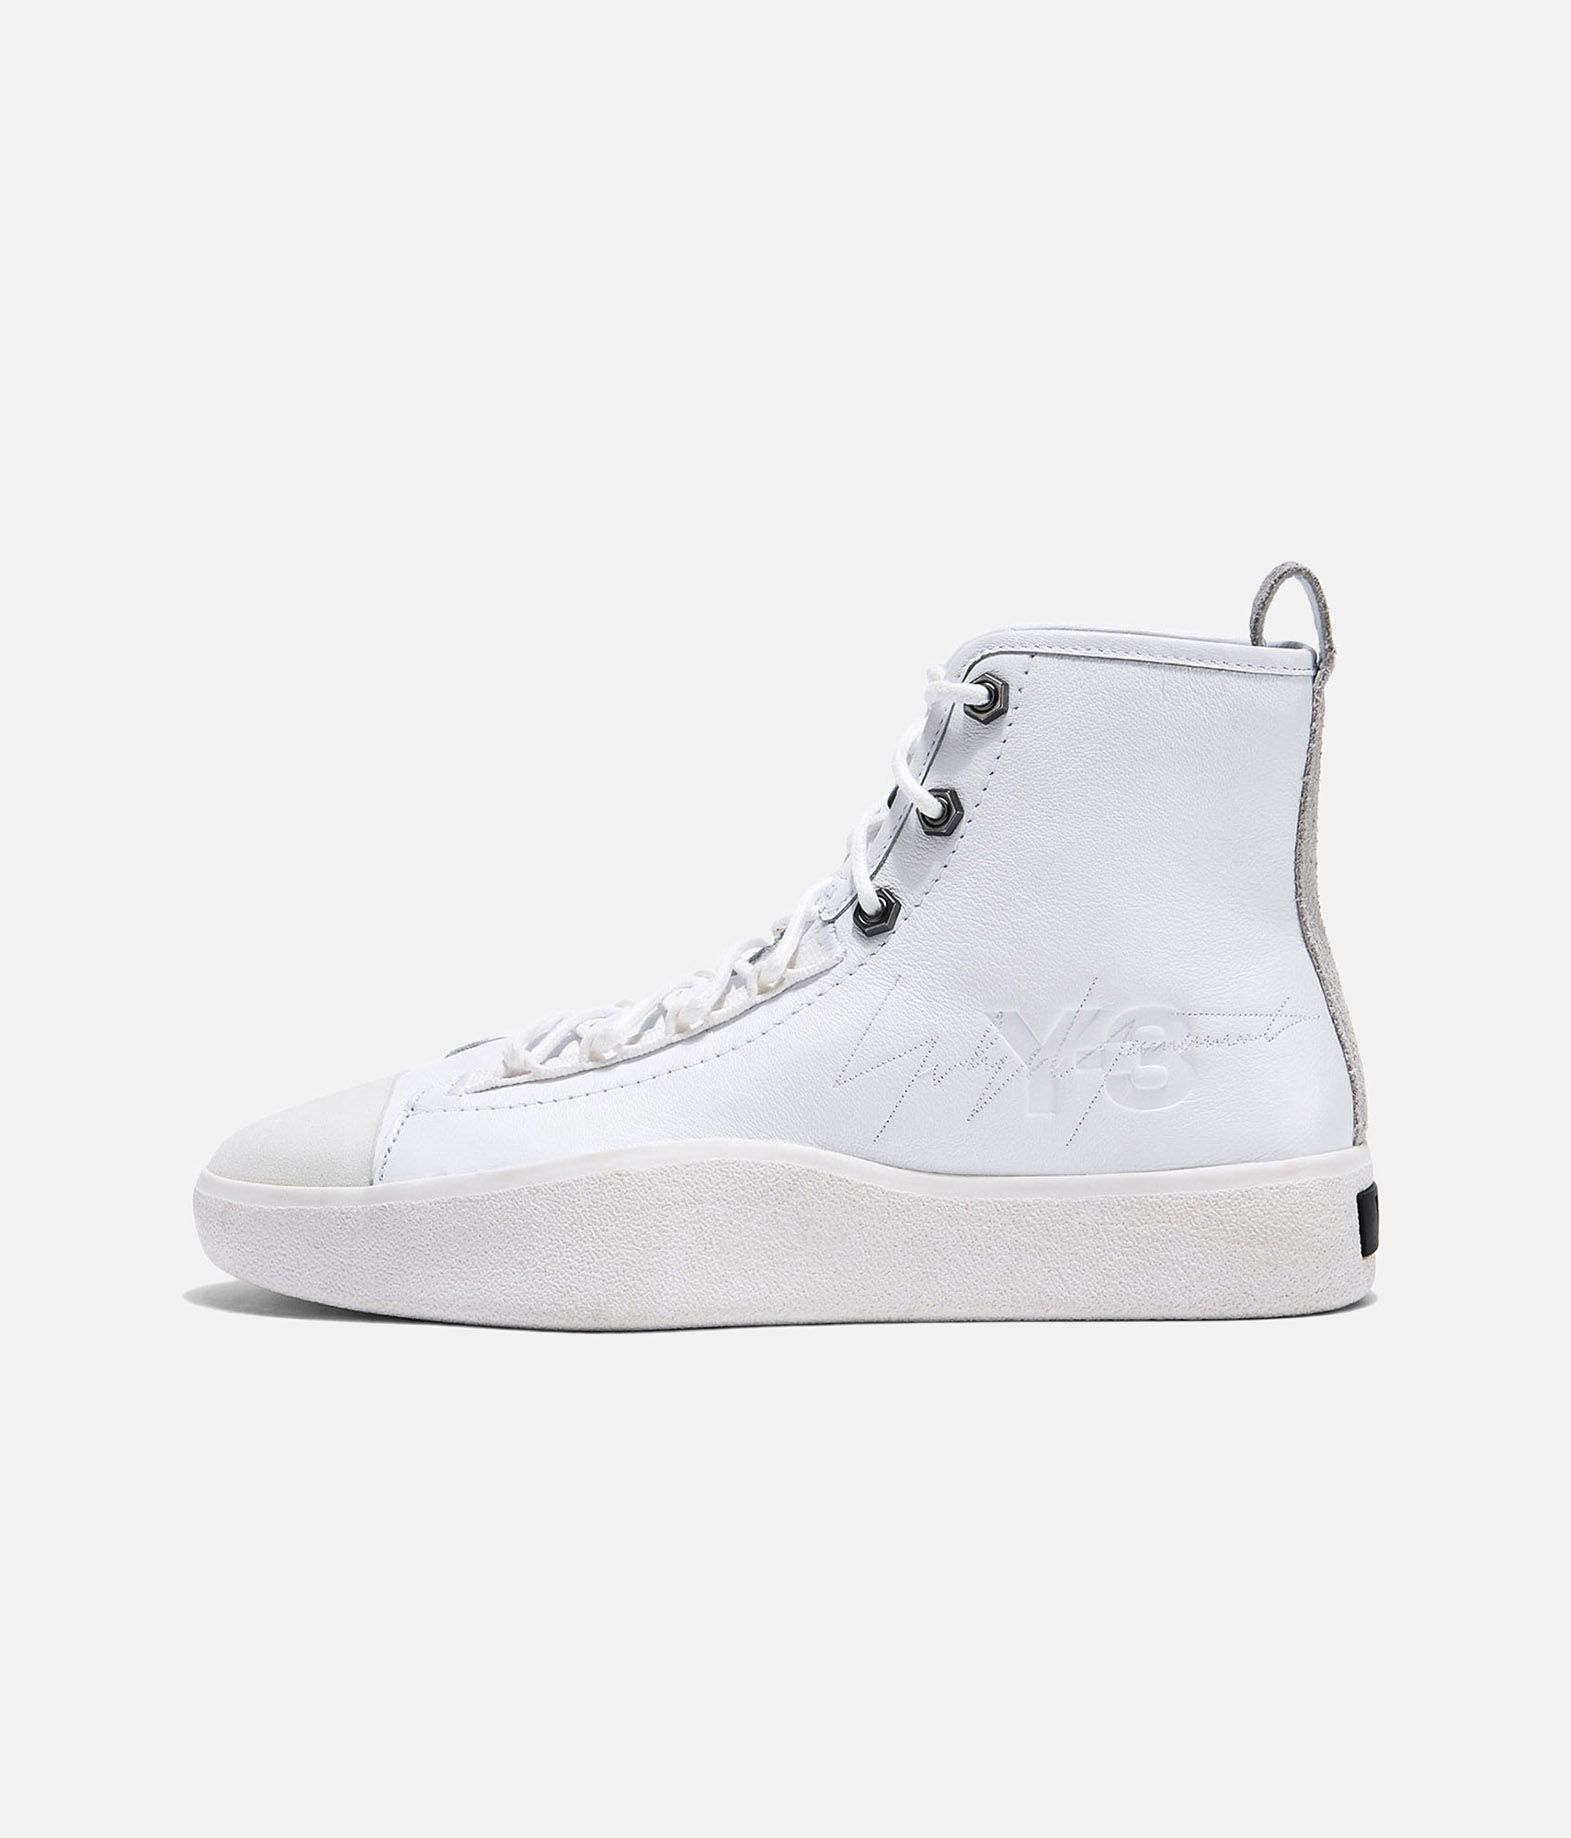 0b717400b2 ... Y-3 Y-3 Bashyo II High-top sneakers E f ...